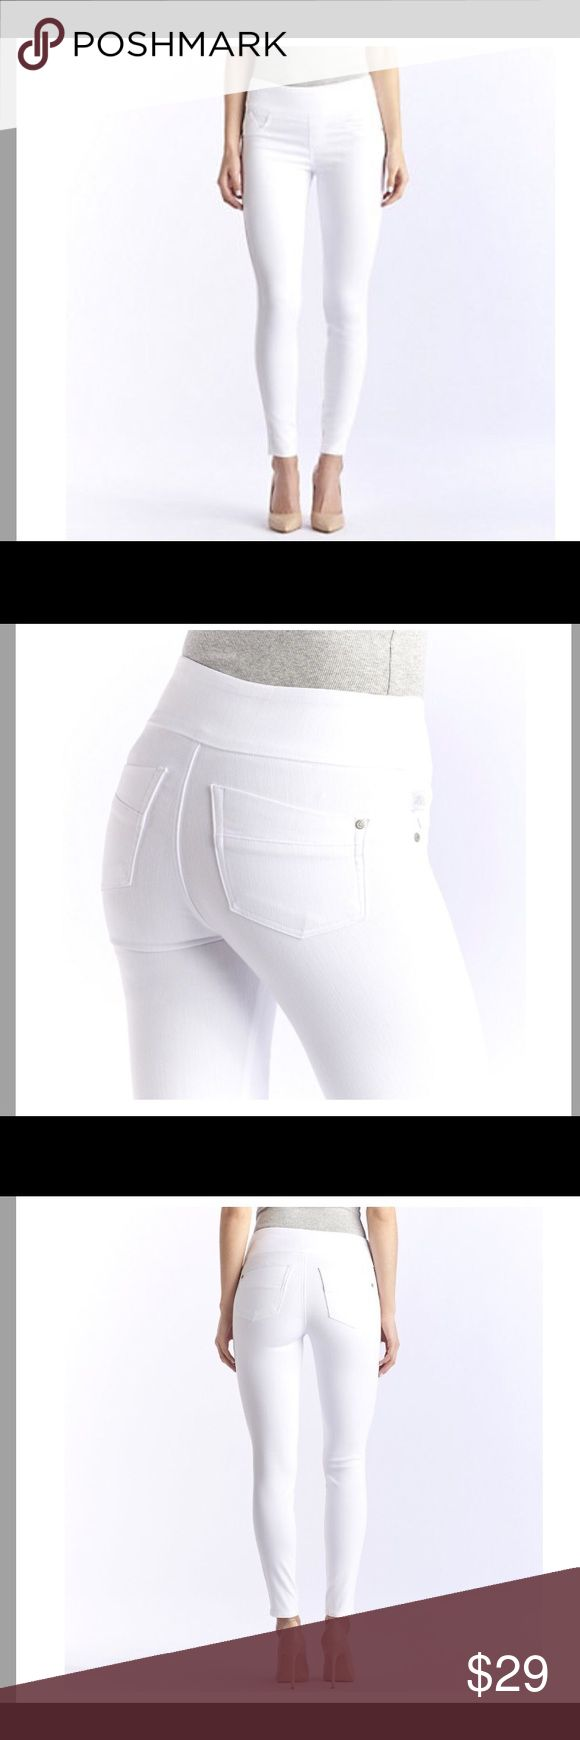 Rock & Republic Denim Rx Fever Midrise Jegging White Rock & Republic Fever Midrise Jegging. These white jegging/leggings are super cute for summer and are so flattering! Panel at the waist does not have a button or zipper. Two stains on the inside front as pictured. Rock & Republic Pants Skinny